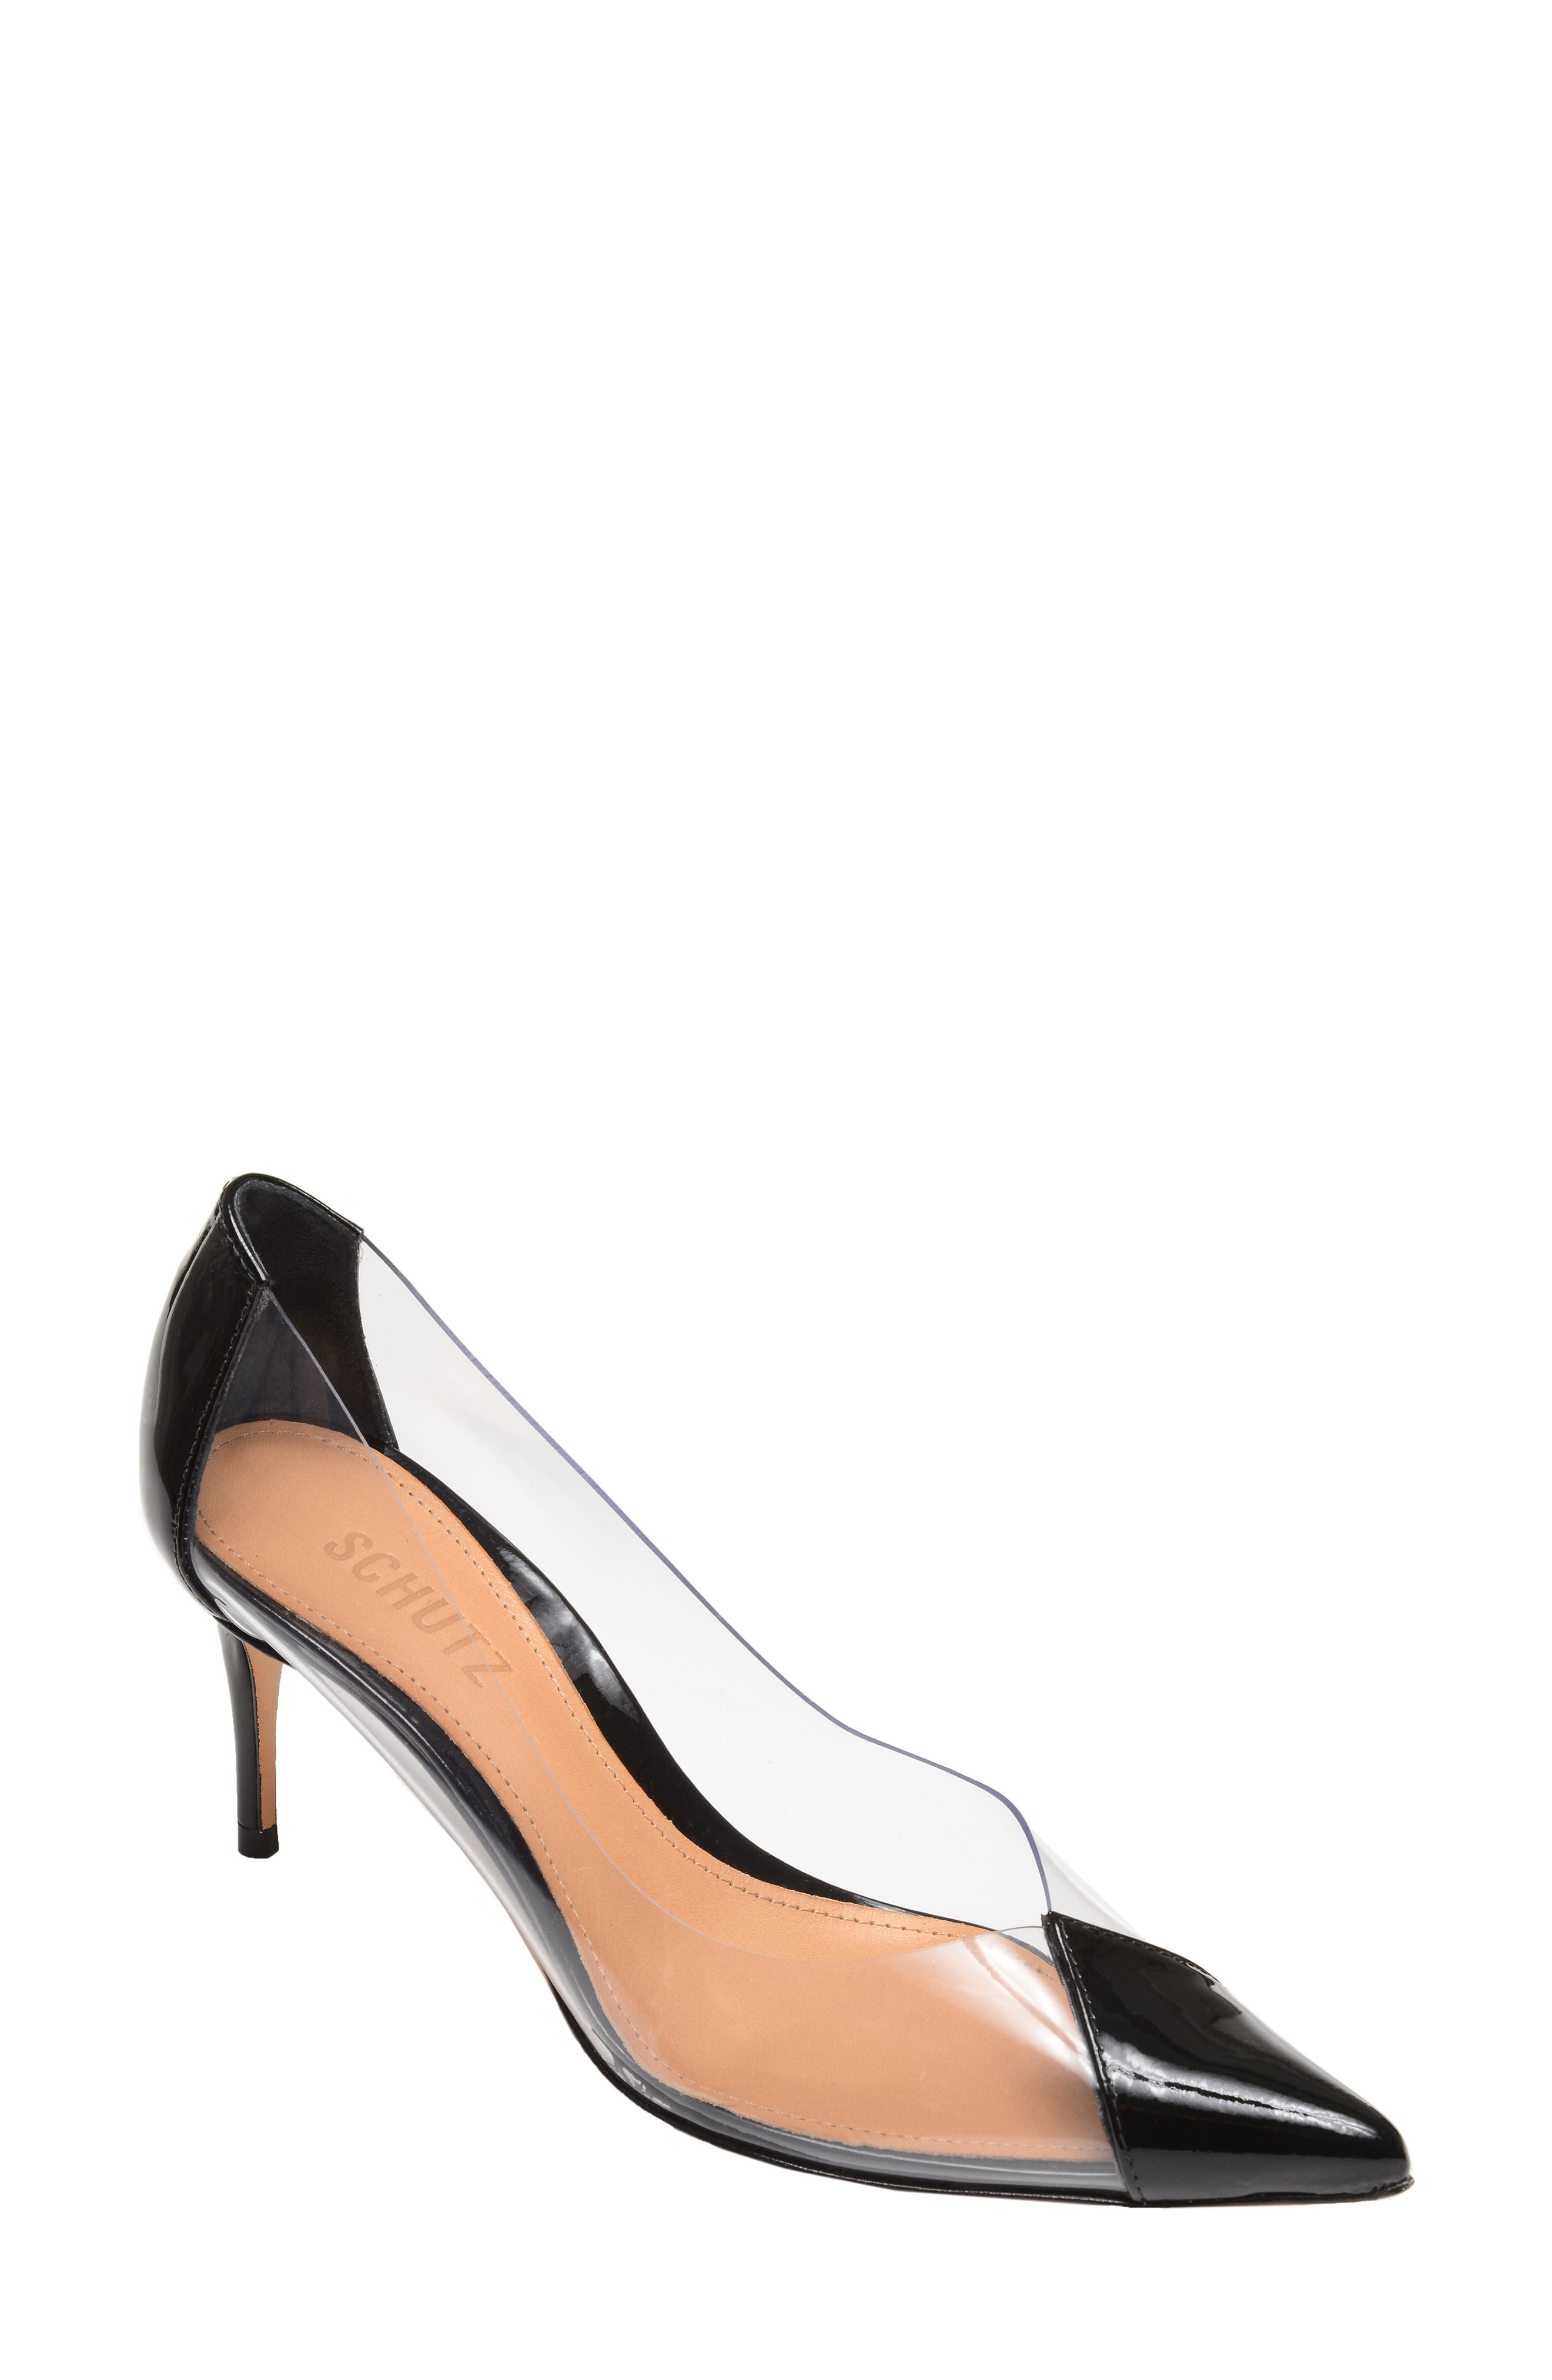 SCHUTZ Garthy Pointy Toe Pump, Main, color, BLACK PATENT LEATHER